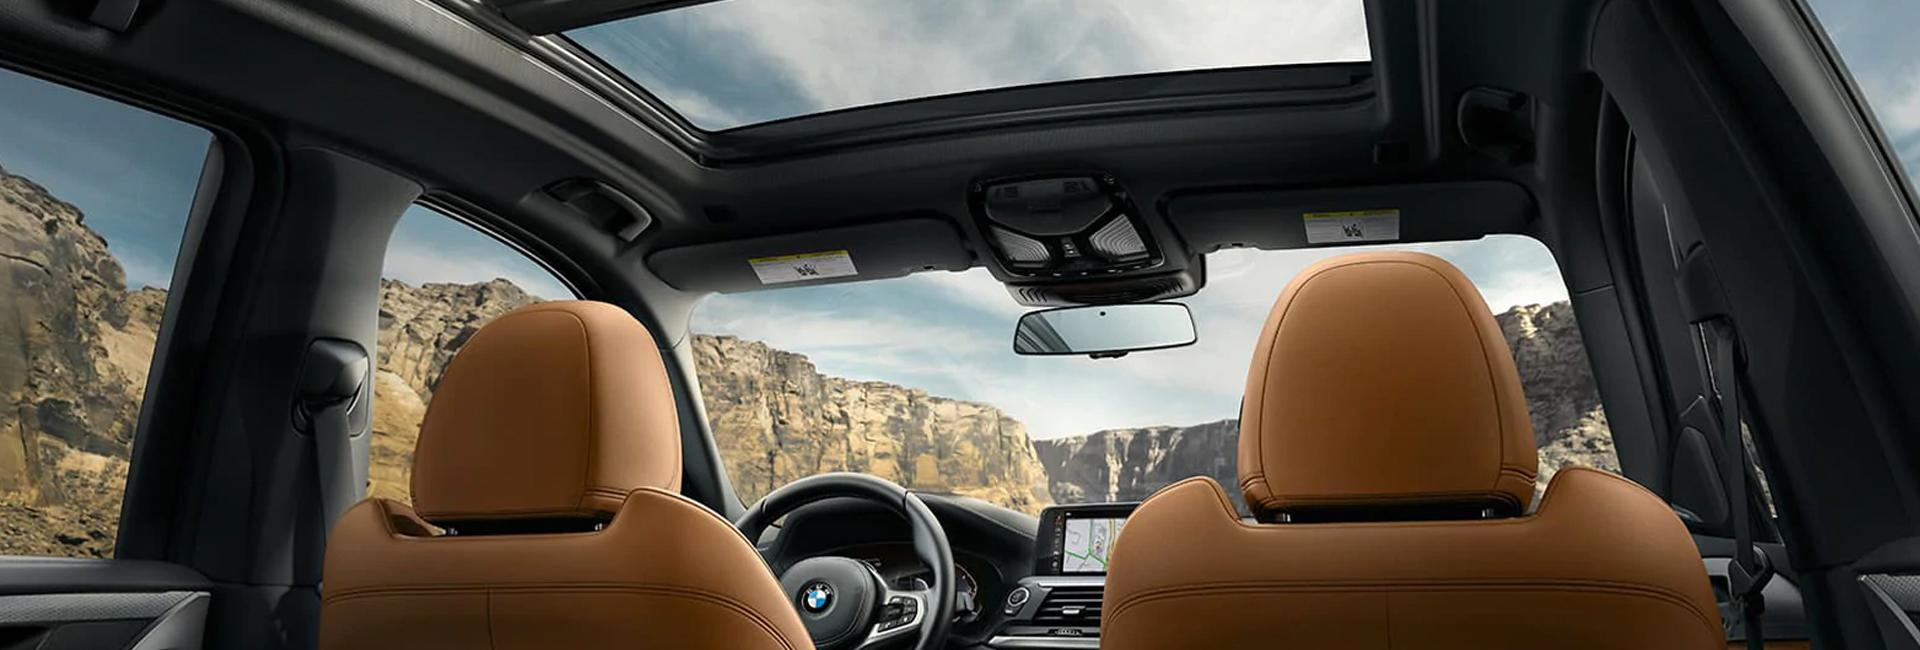 Full interior view of the 2021 BMW X3